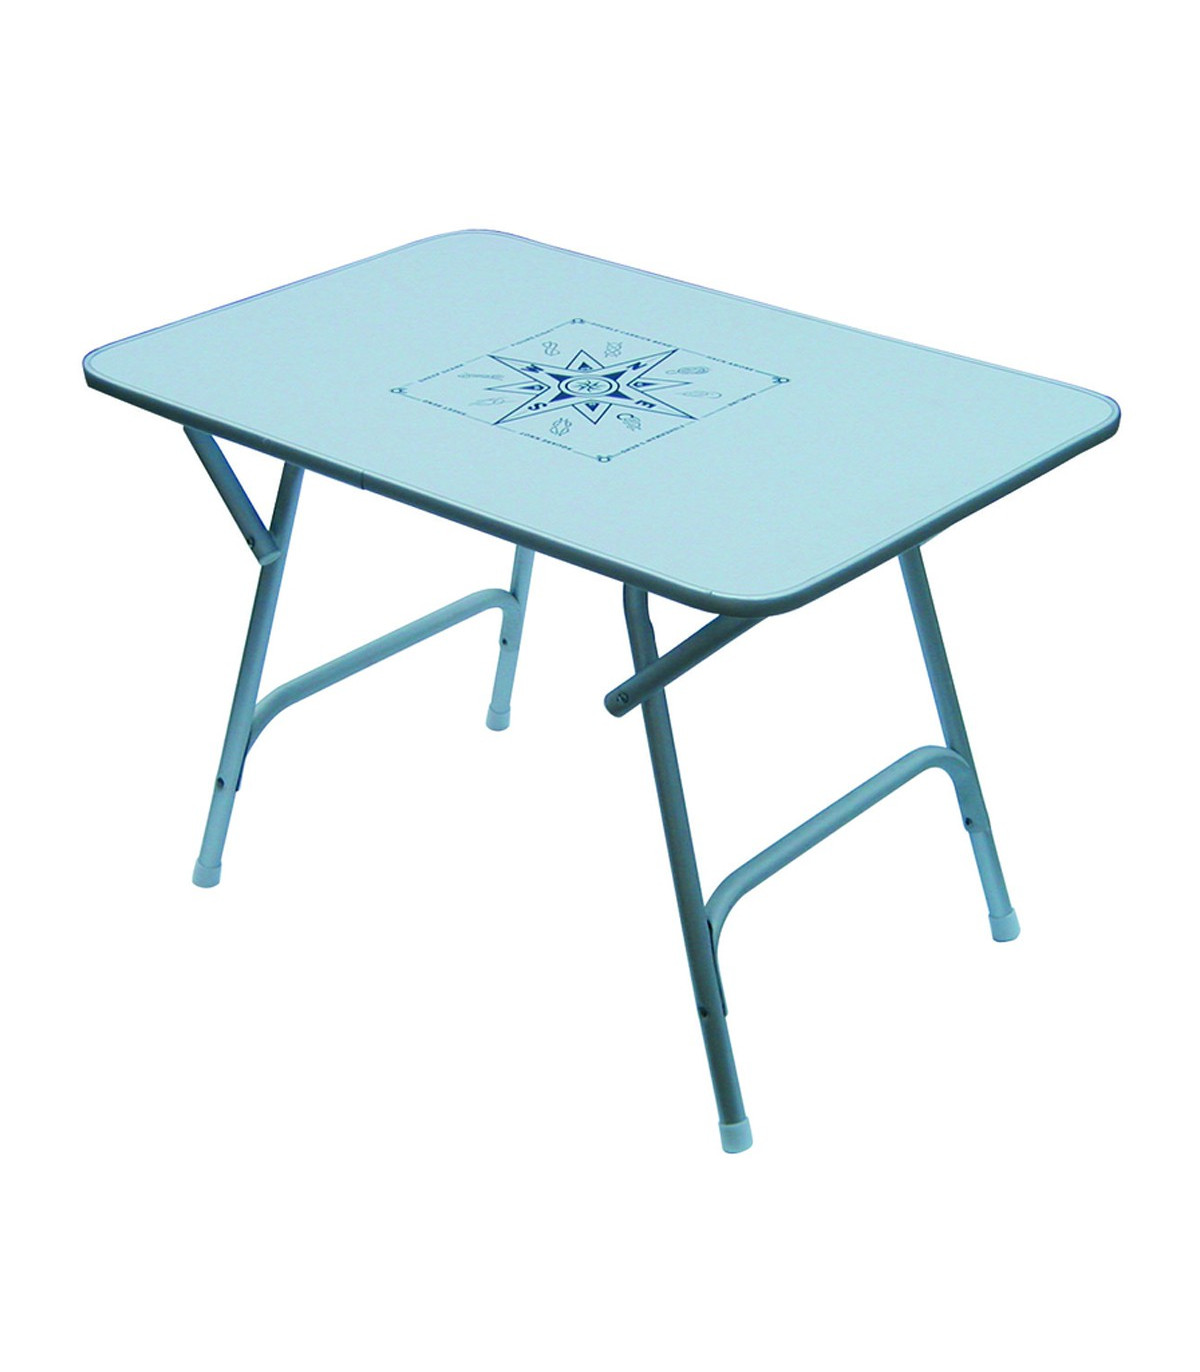 Table Aluminium Pliante Table Pliante En Aluminium Satiné Gm